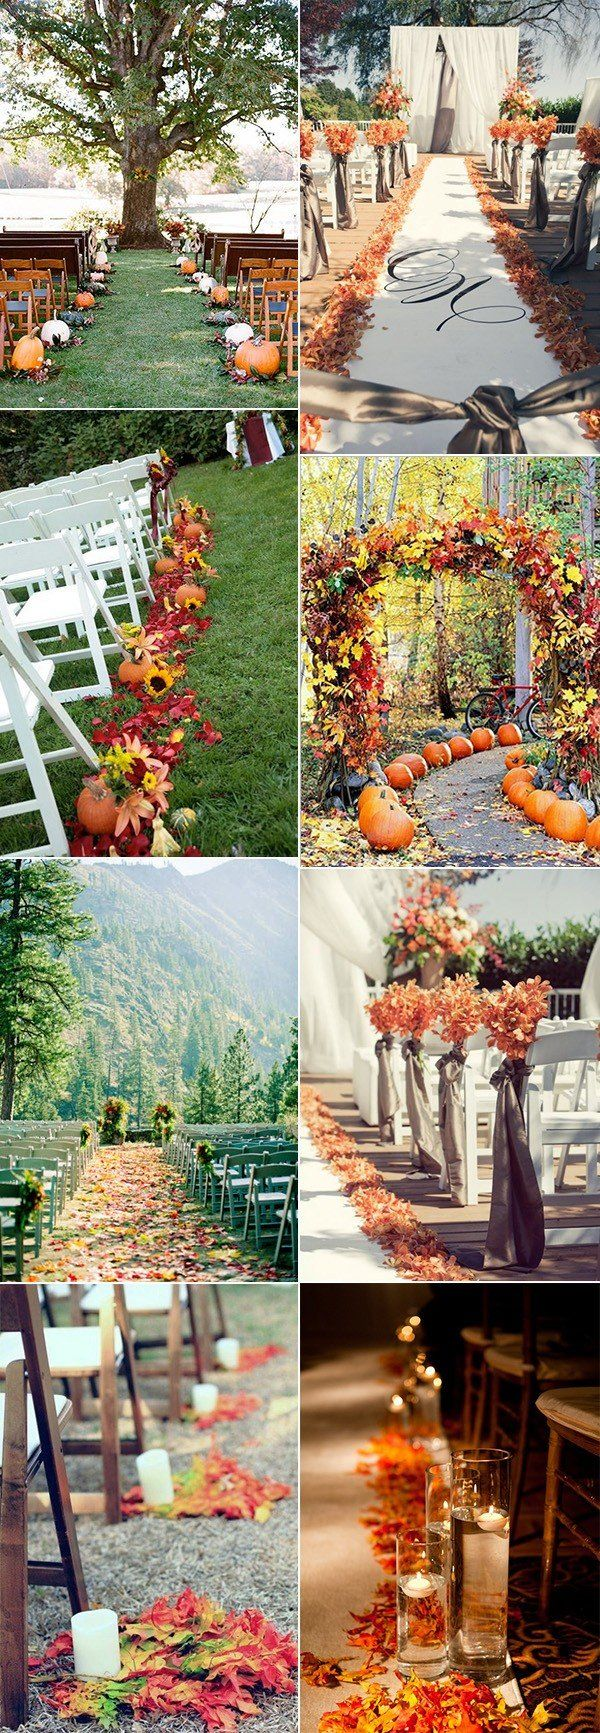 70+ Amazing Fall Wedding Ideas For 2017